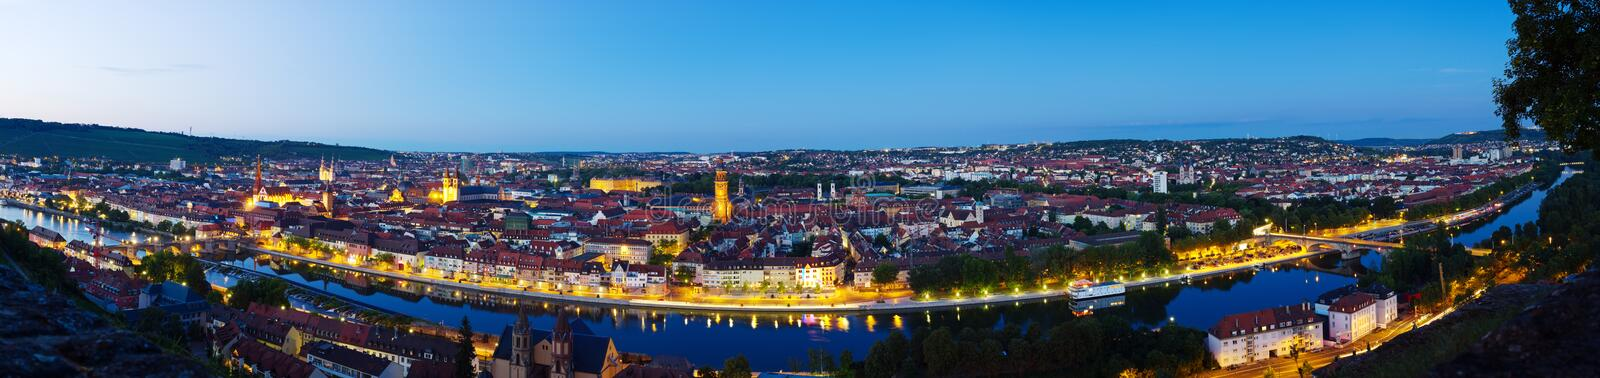 Download Wuerzburg At Night Panorama Stock Photography - Image: 26526722